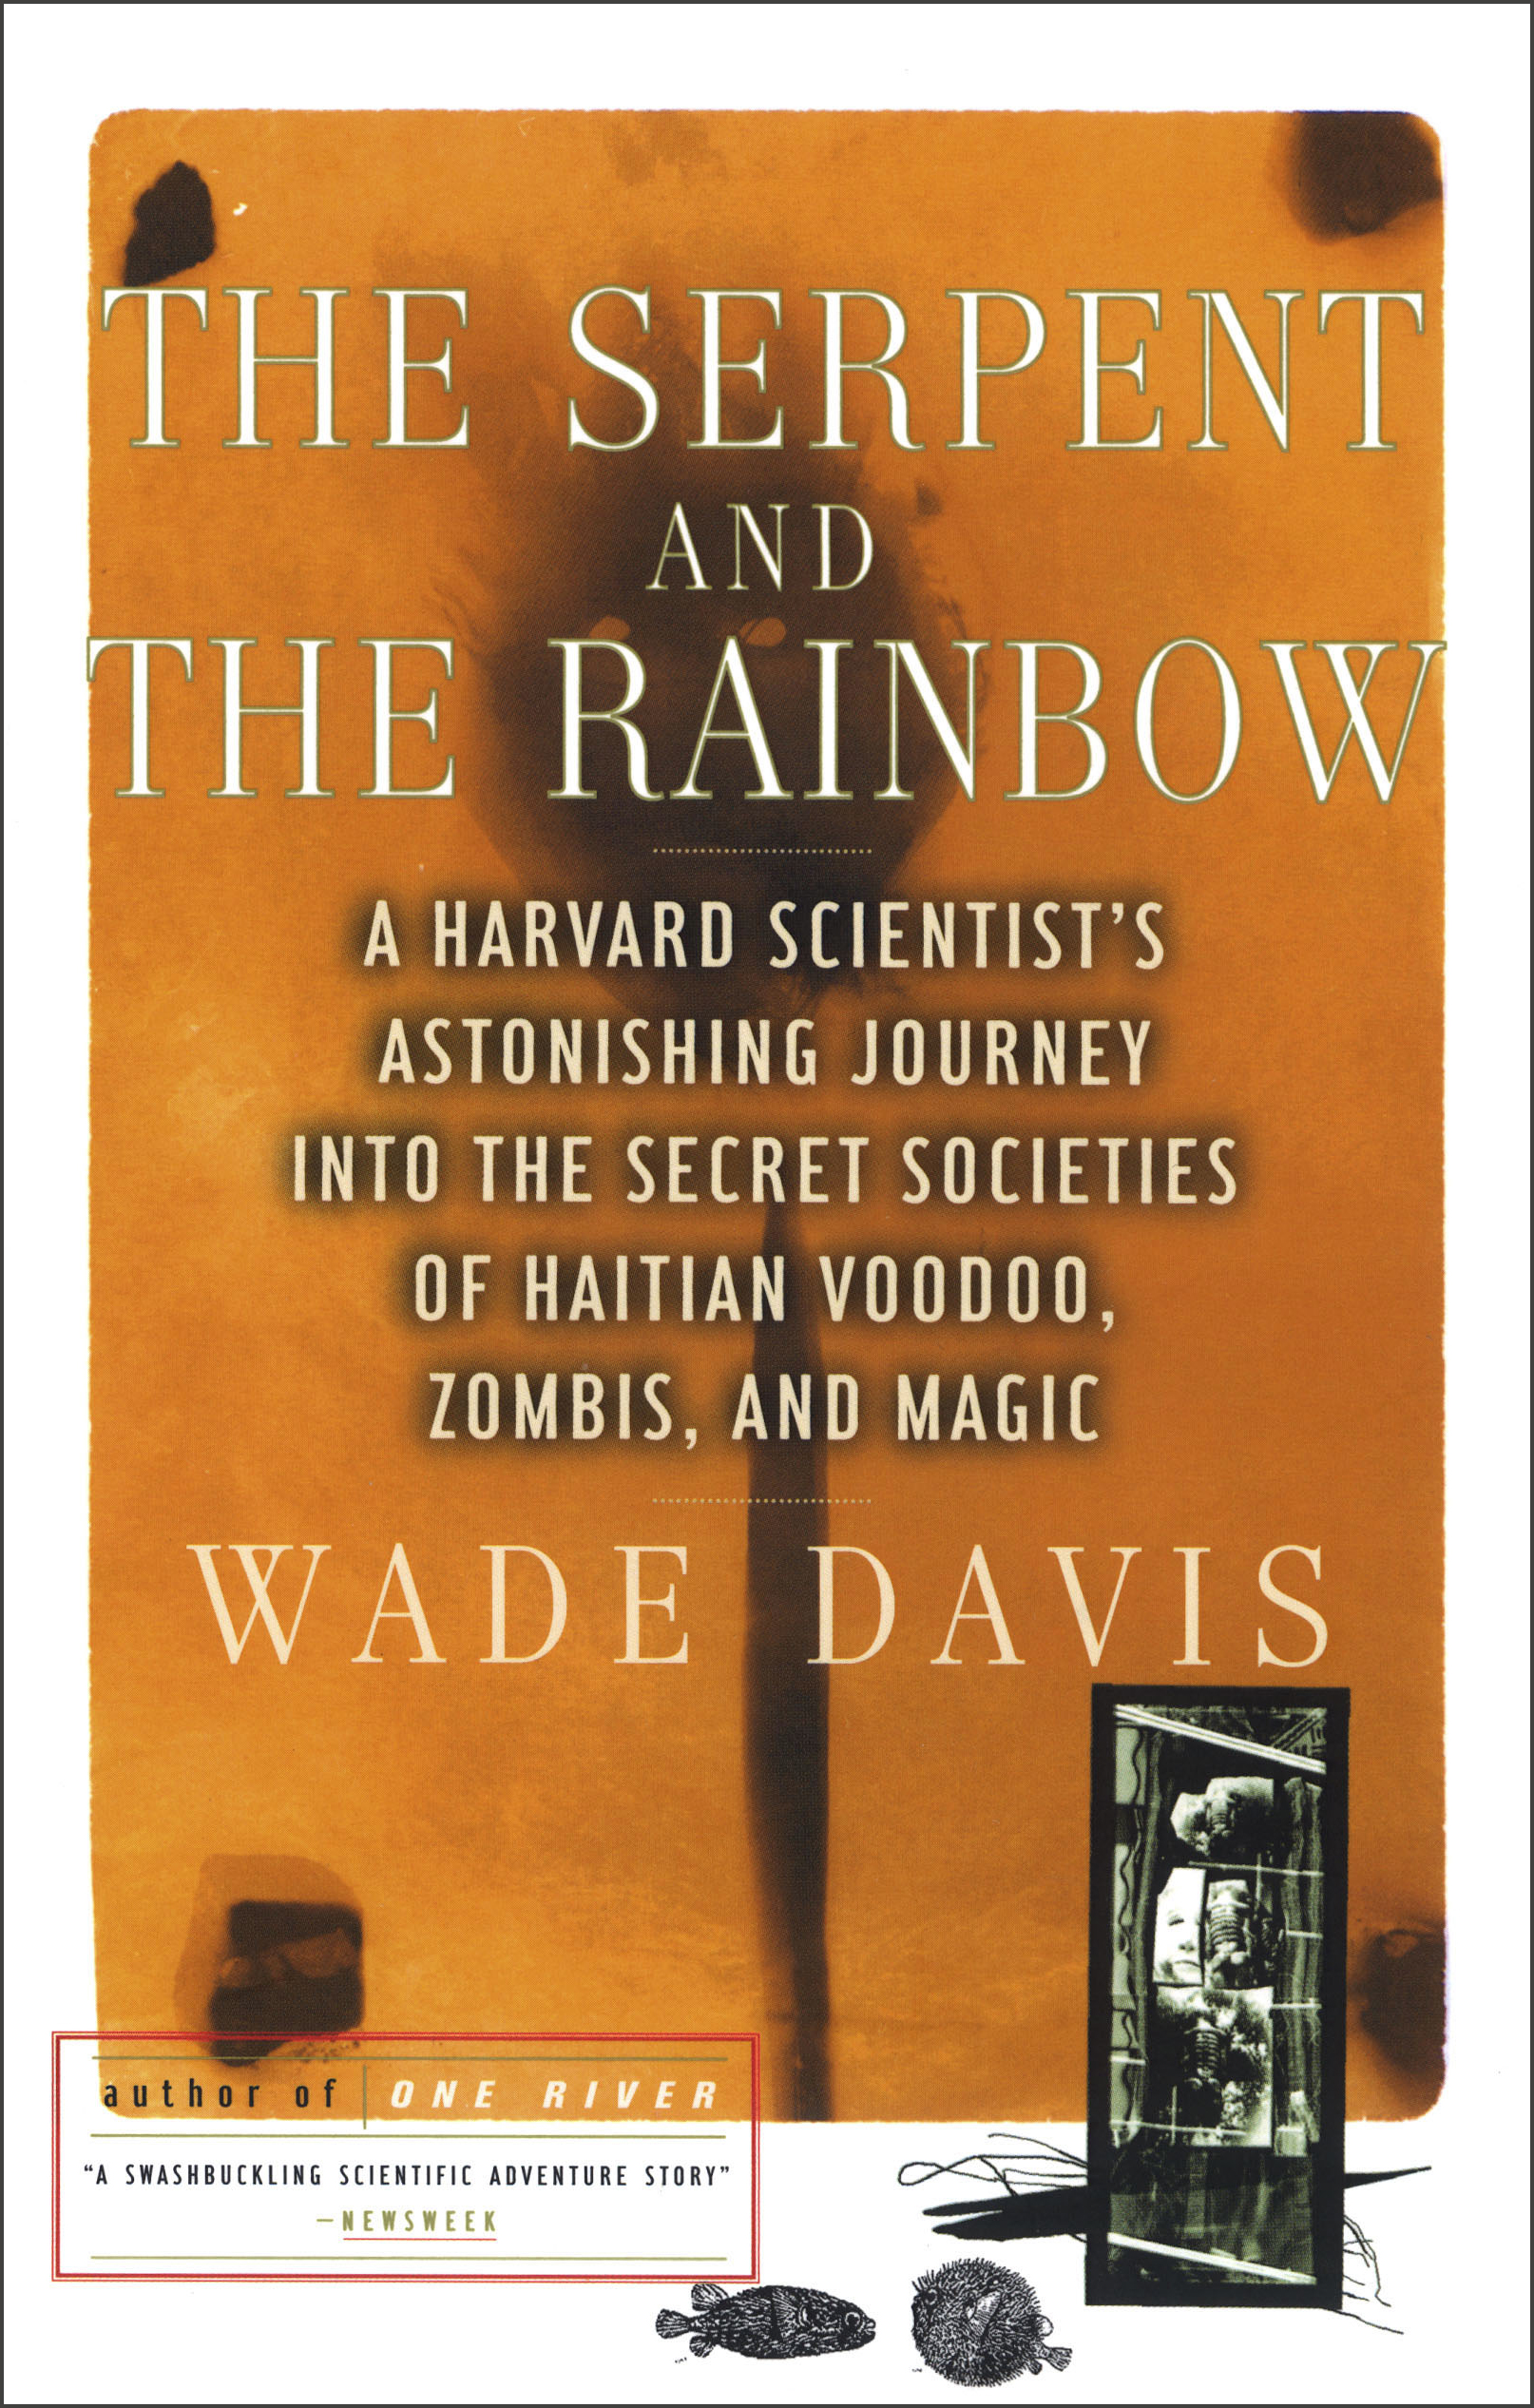 The Serpent and the Rainbow: A Harvard Scientist's